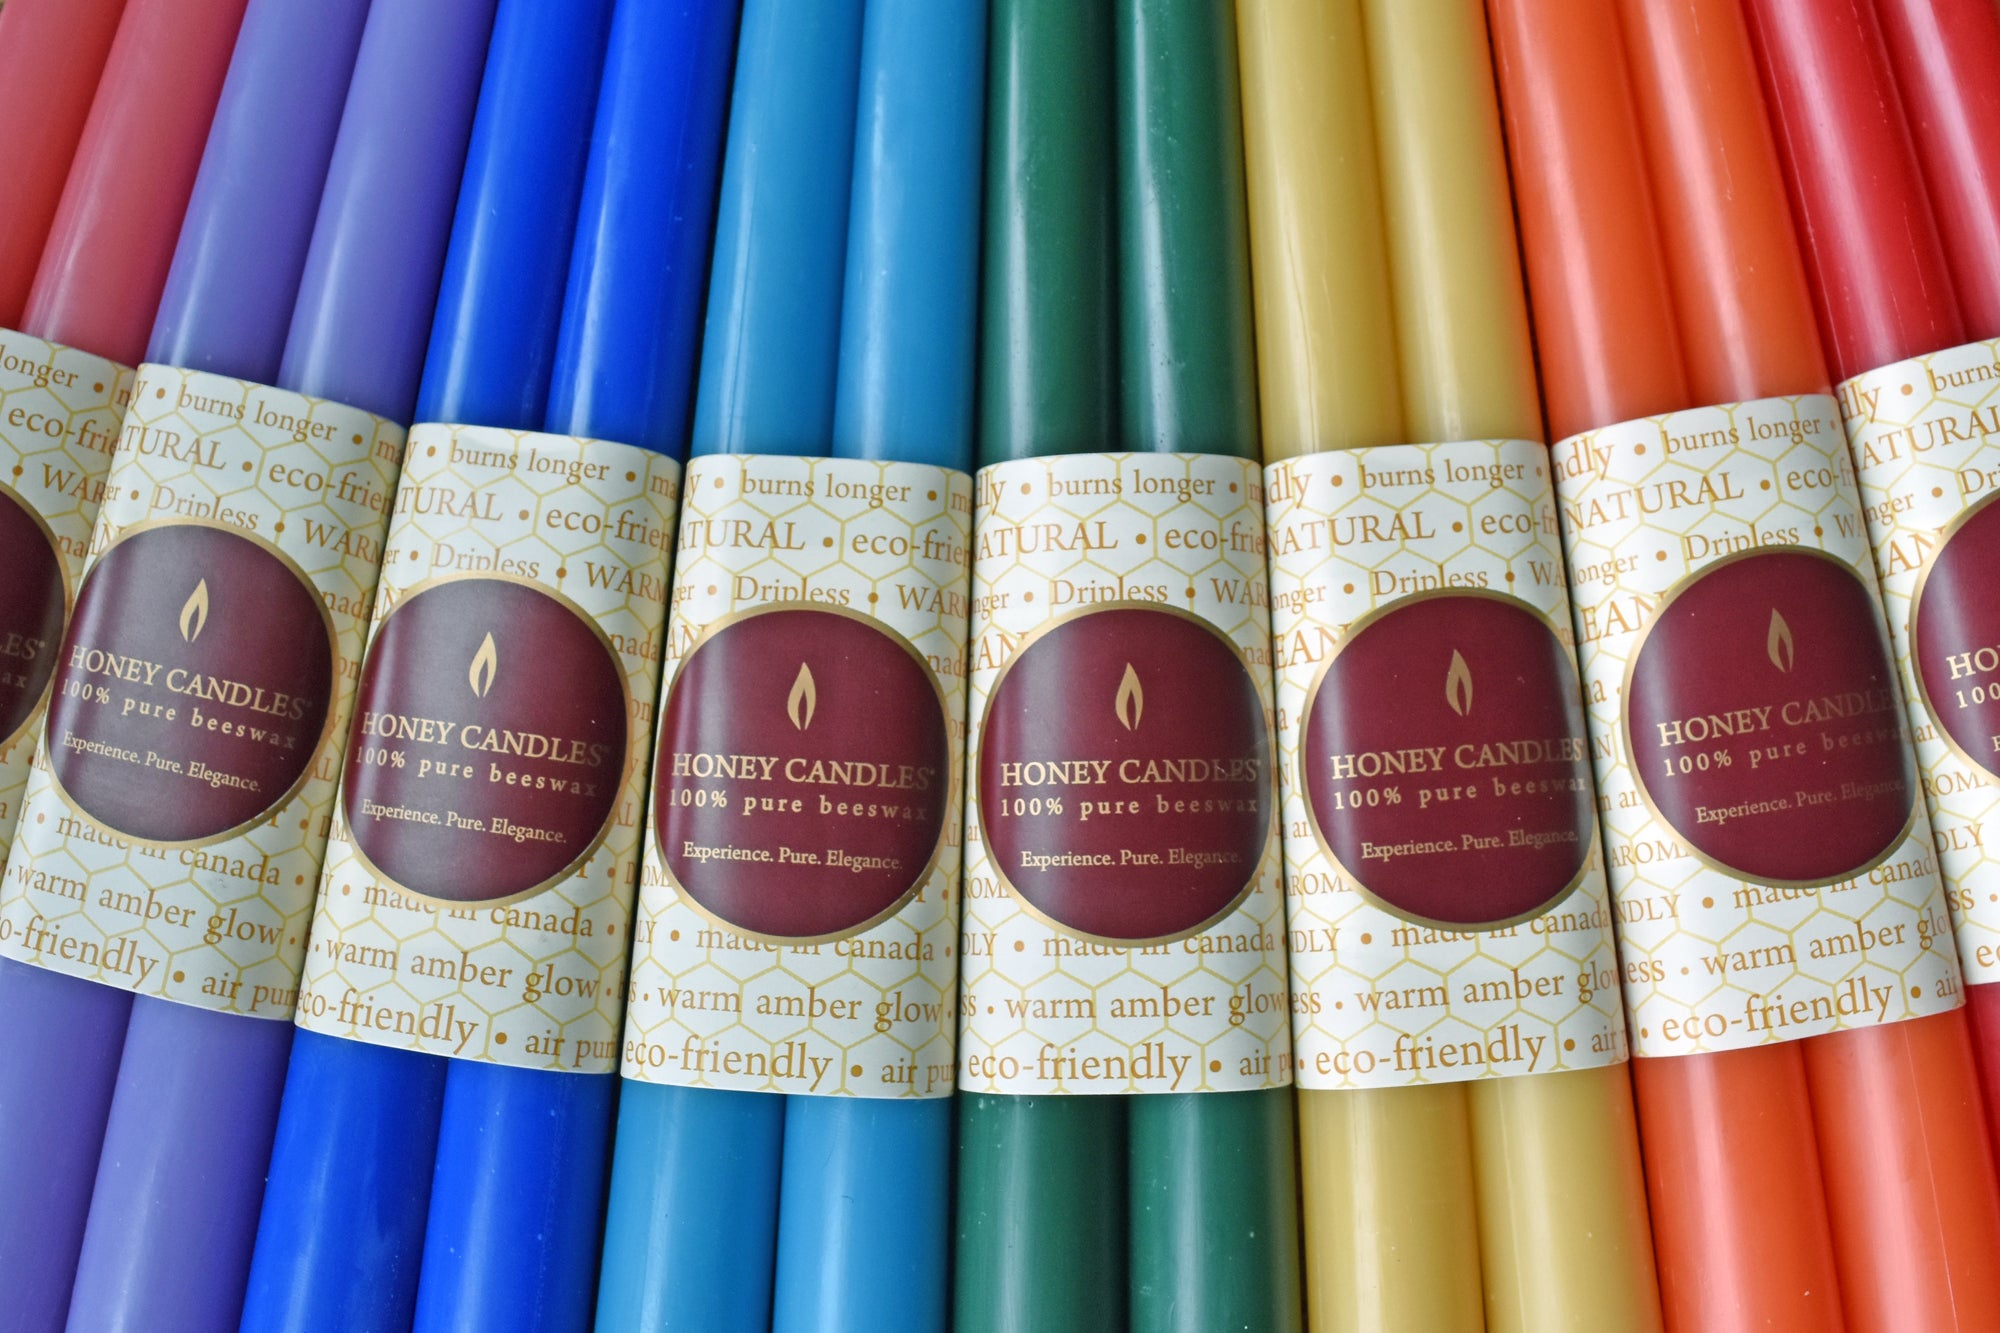 We use Enviro-dyes in our Colored Beeswax Candles